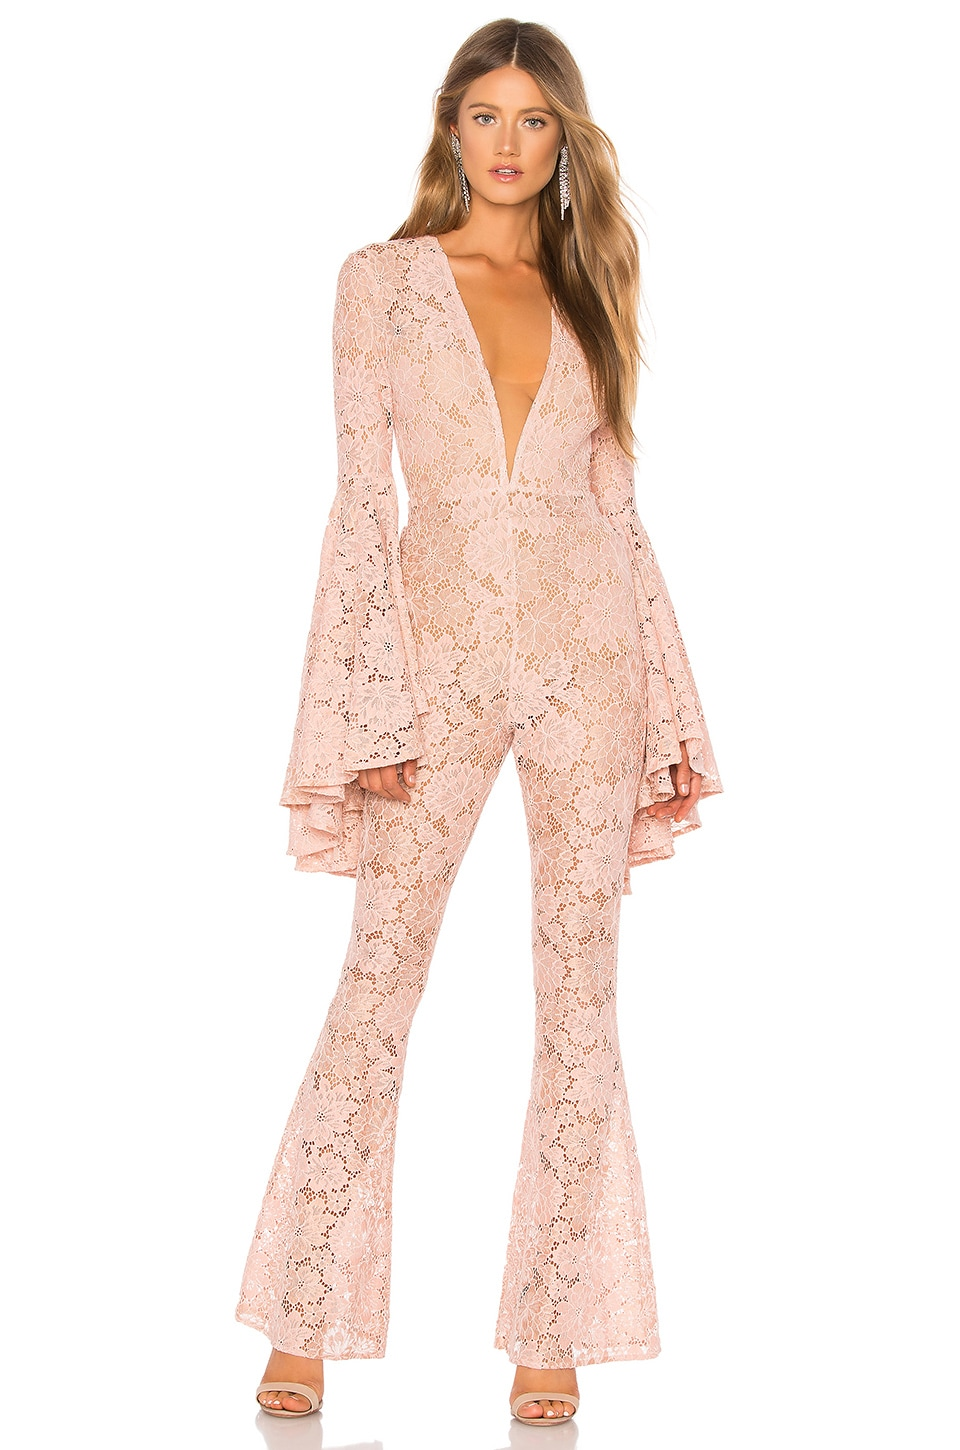 x REVOLVE Beauty Jumpsuit